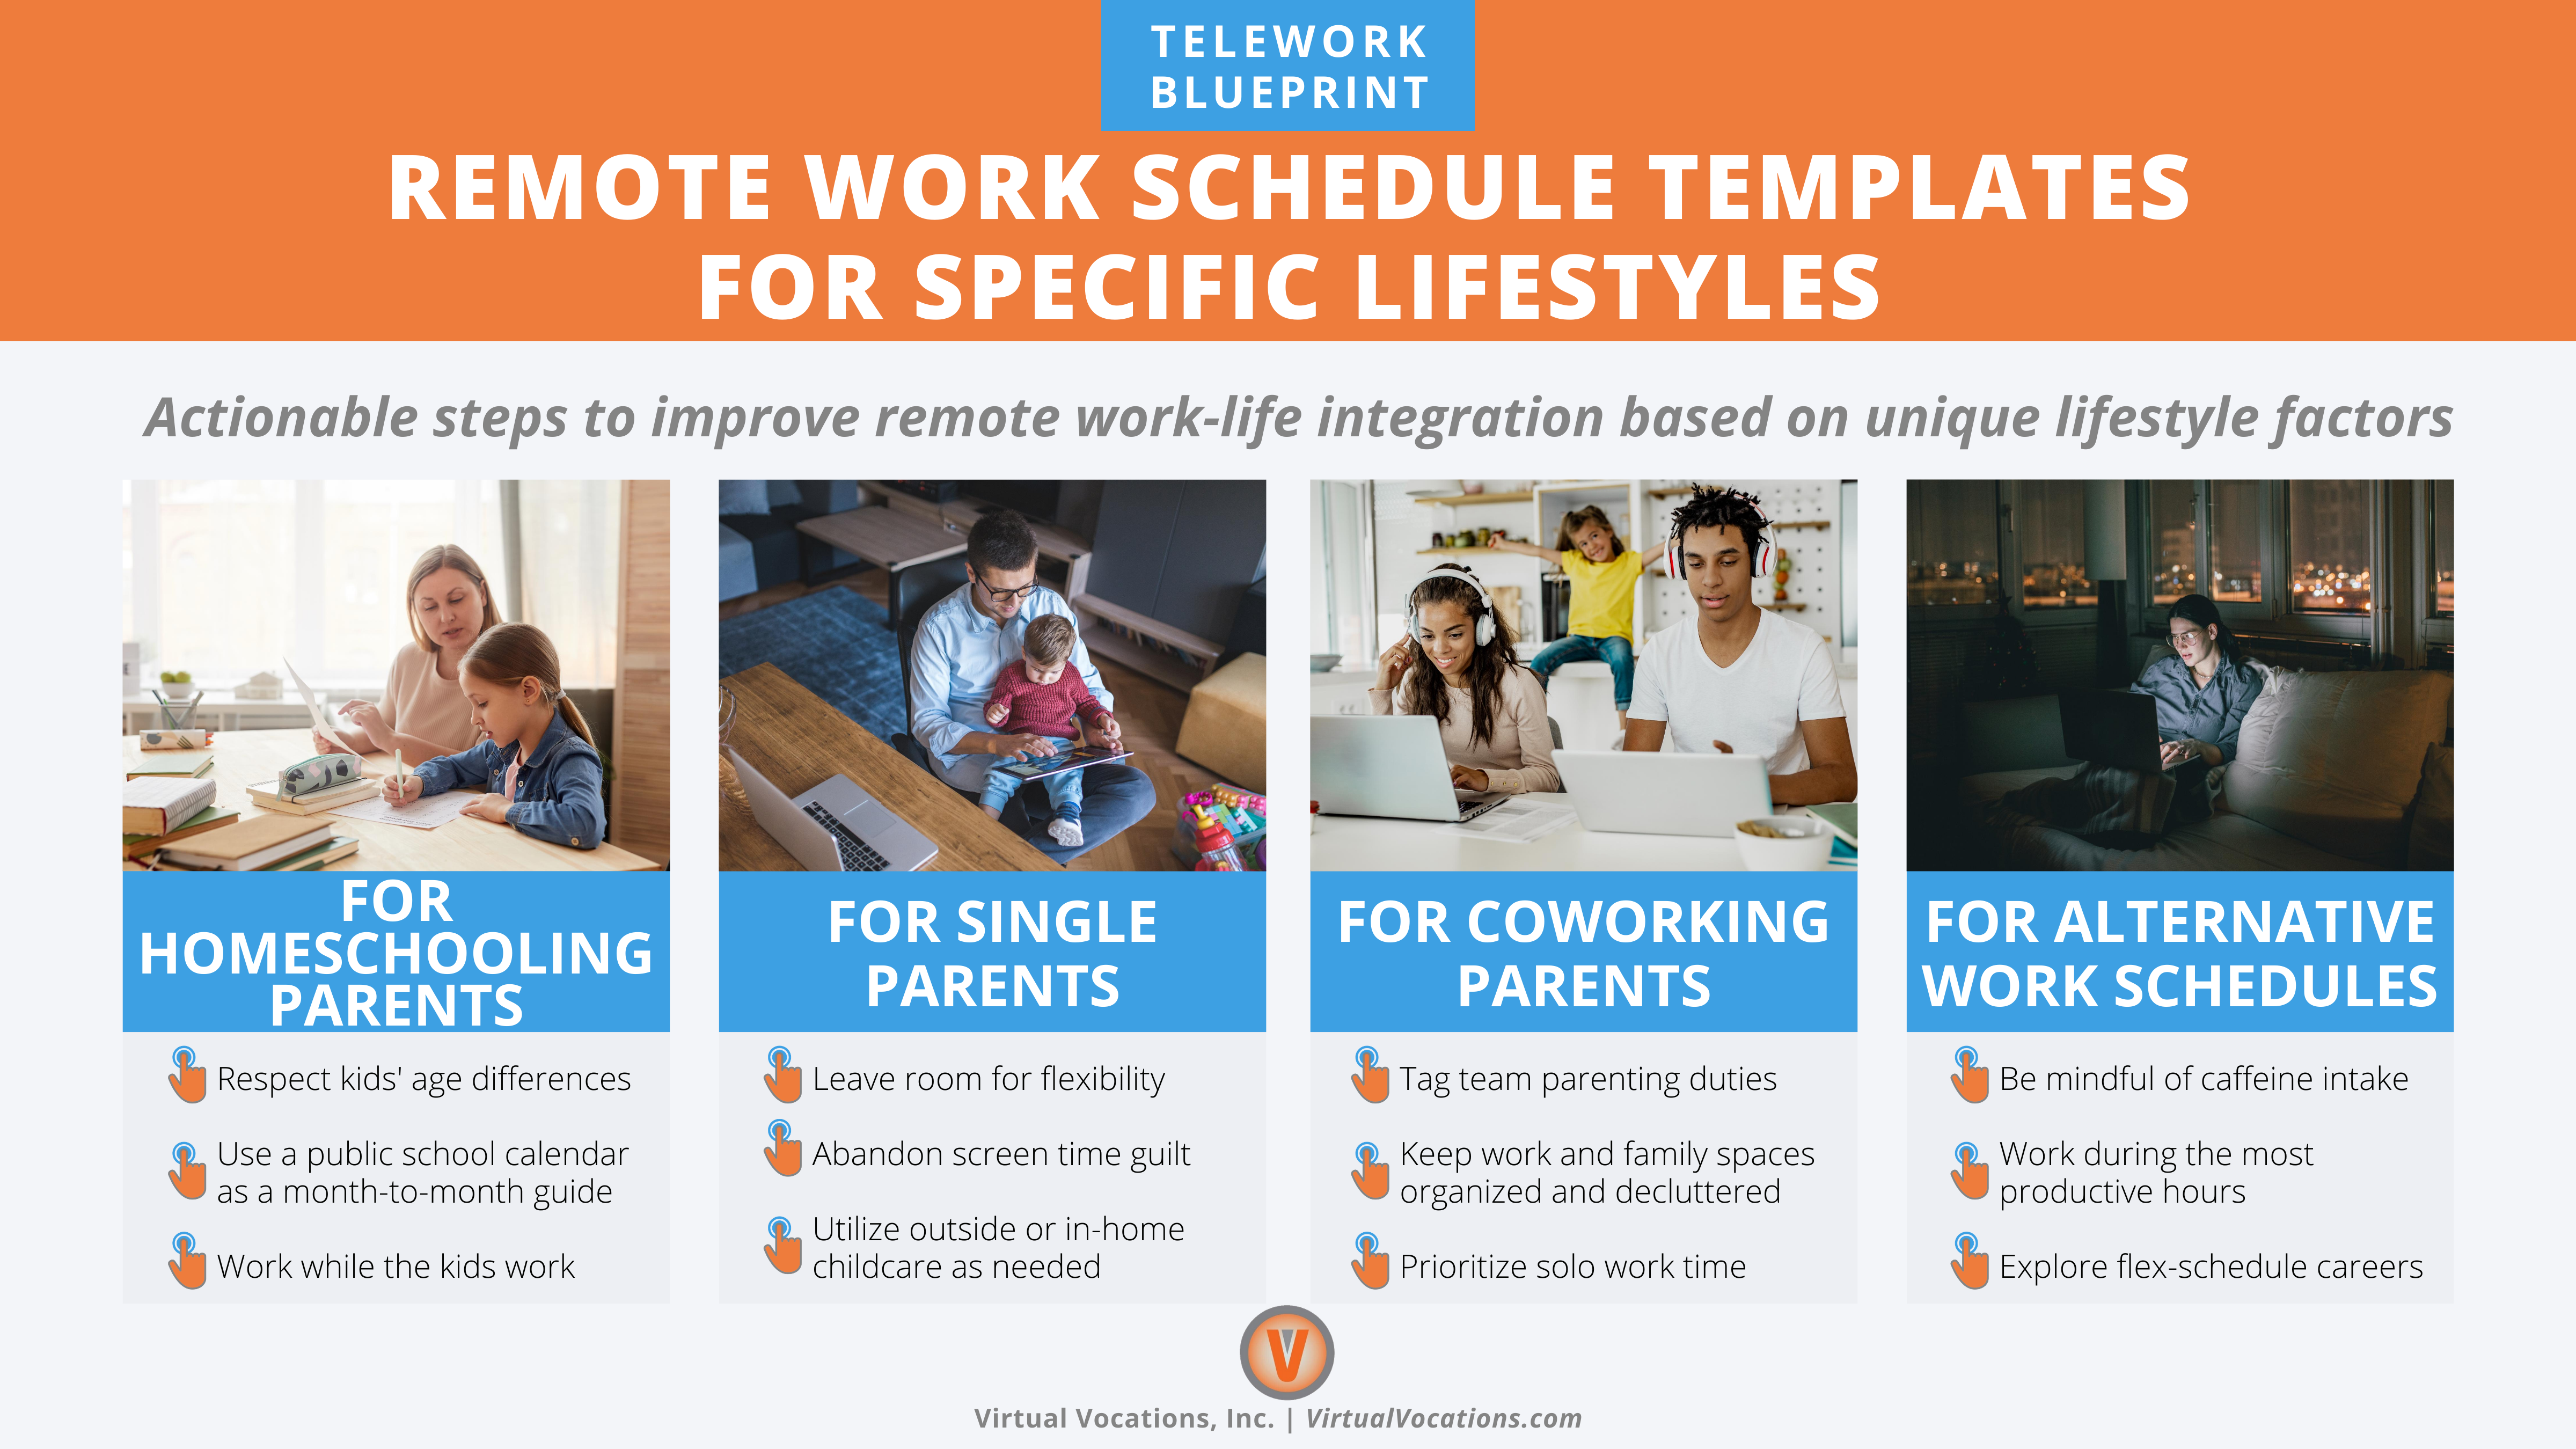 Virtual Vocations - Remote Work Templates for Specific Lifestyles - Telework Blueprint